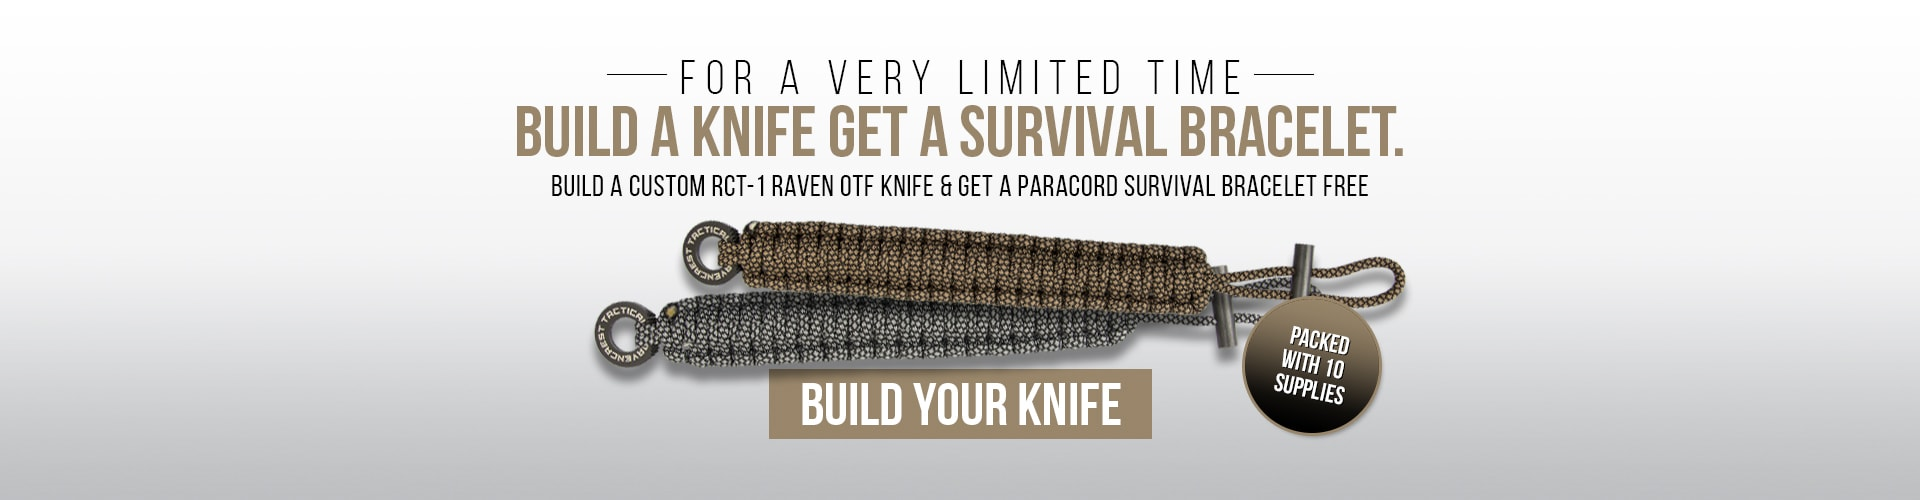 Build a custom knife and get a free paranoid